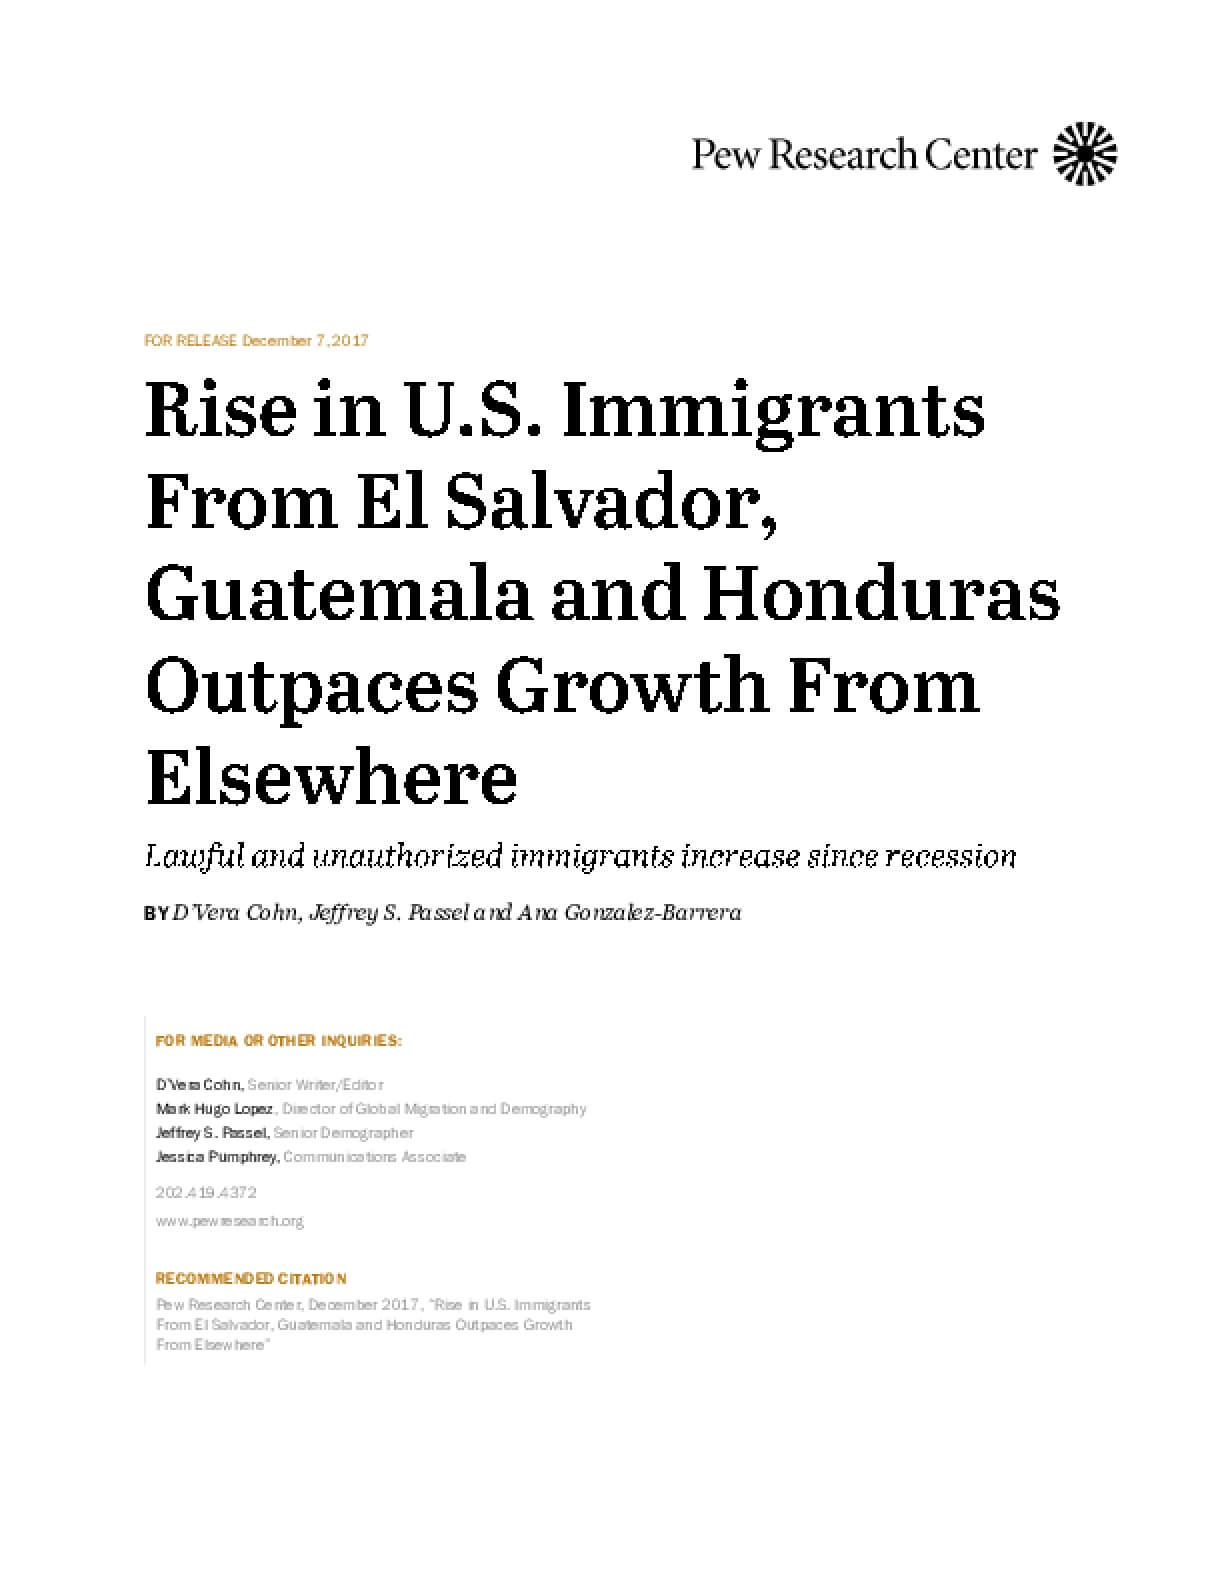 Rise in U.S. Immigrants From El Salvador, Guatemala and Honduras Outpaces Growth From Elsewhere